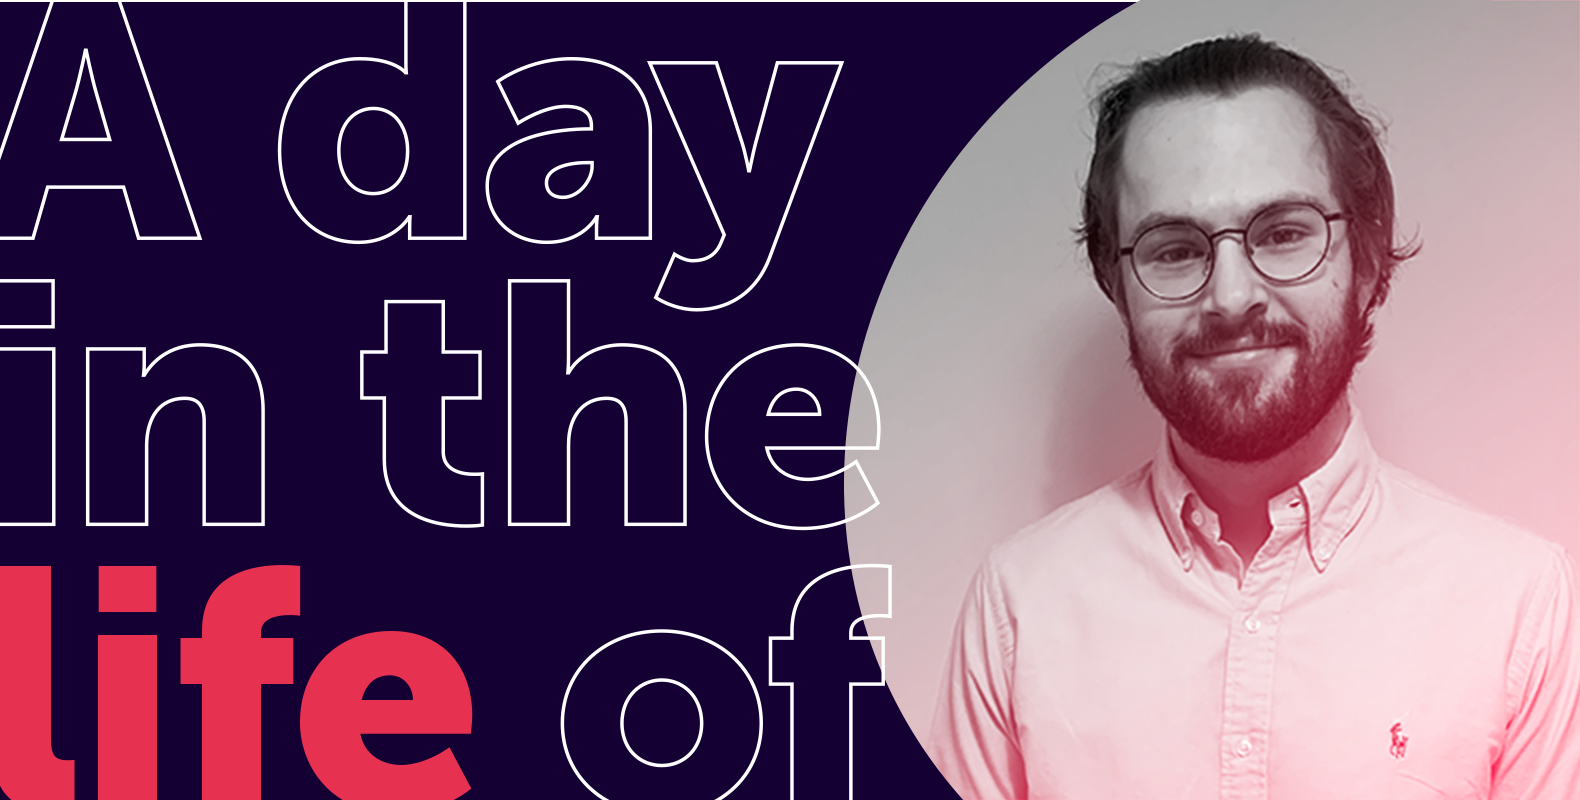 A day in the life of one of our Senior Account Executives - Sean Deans